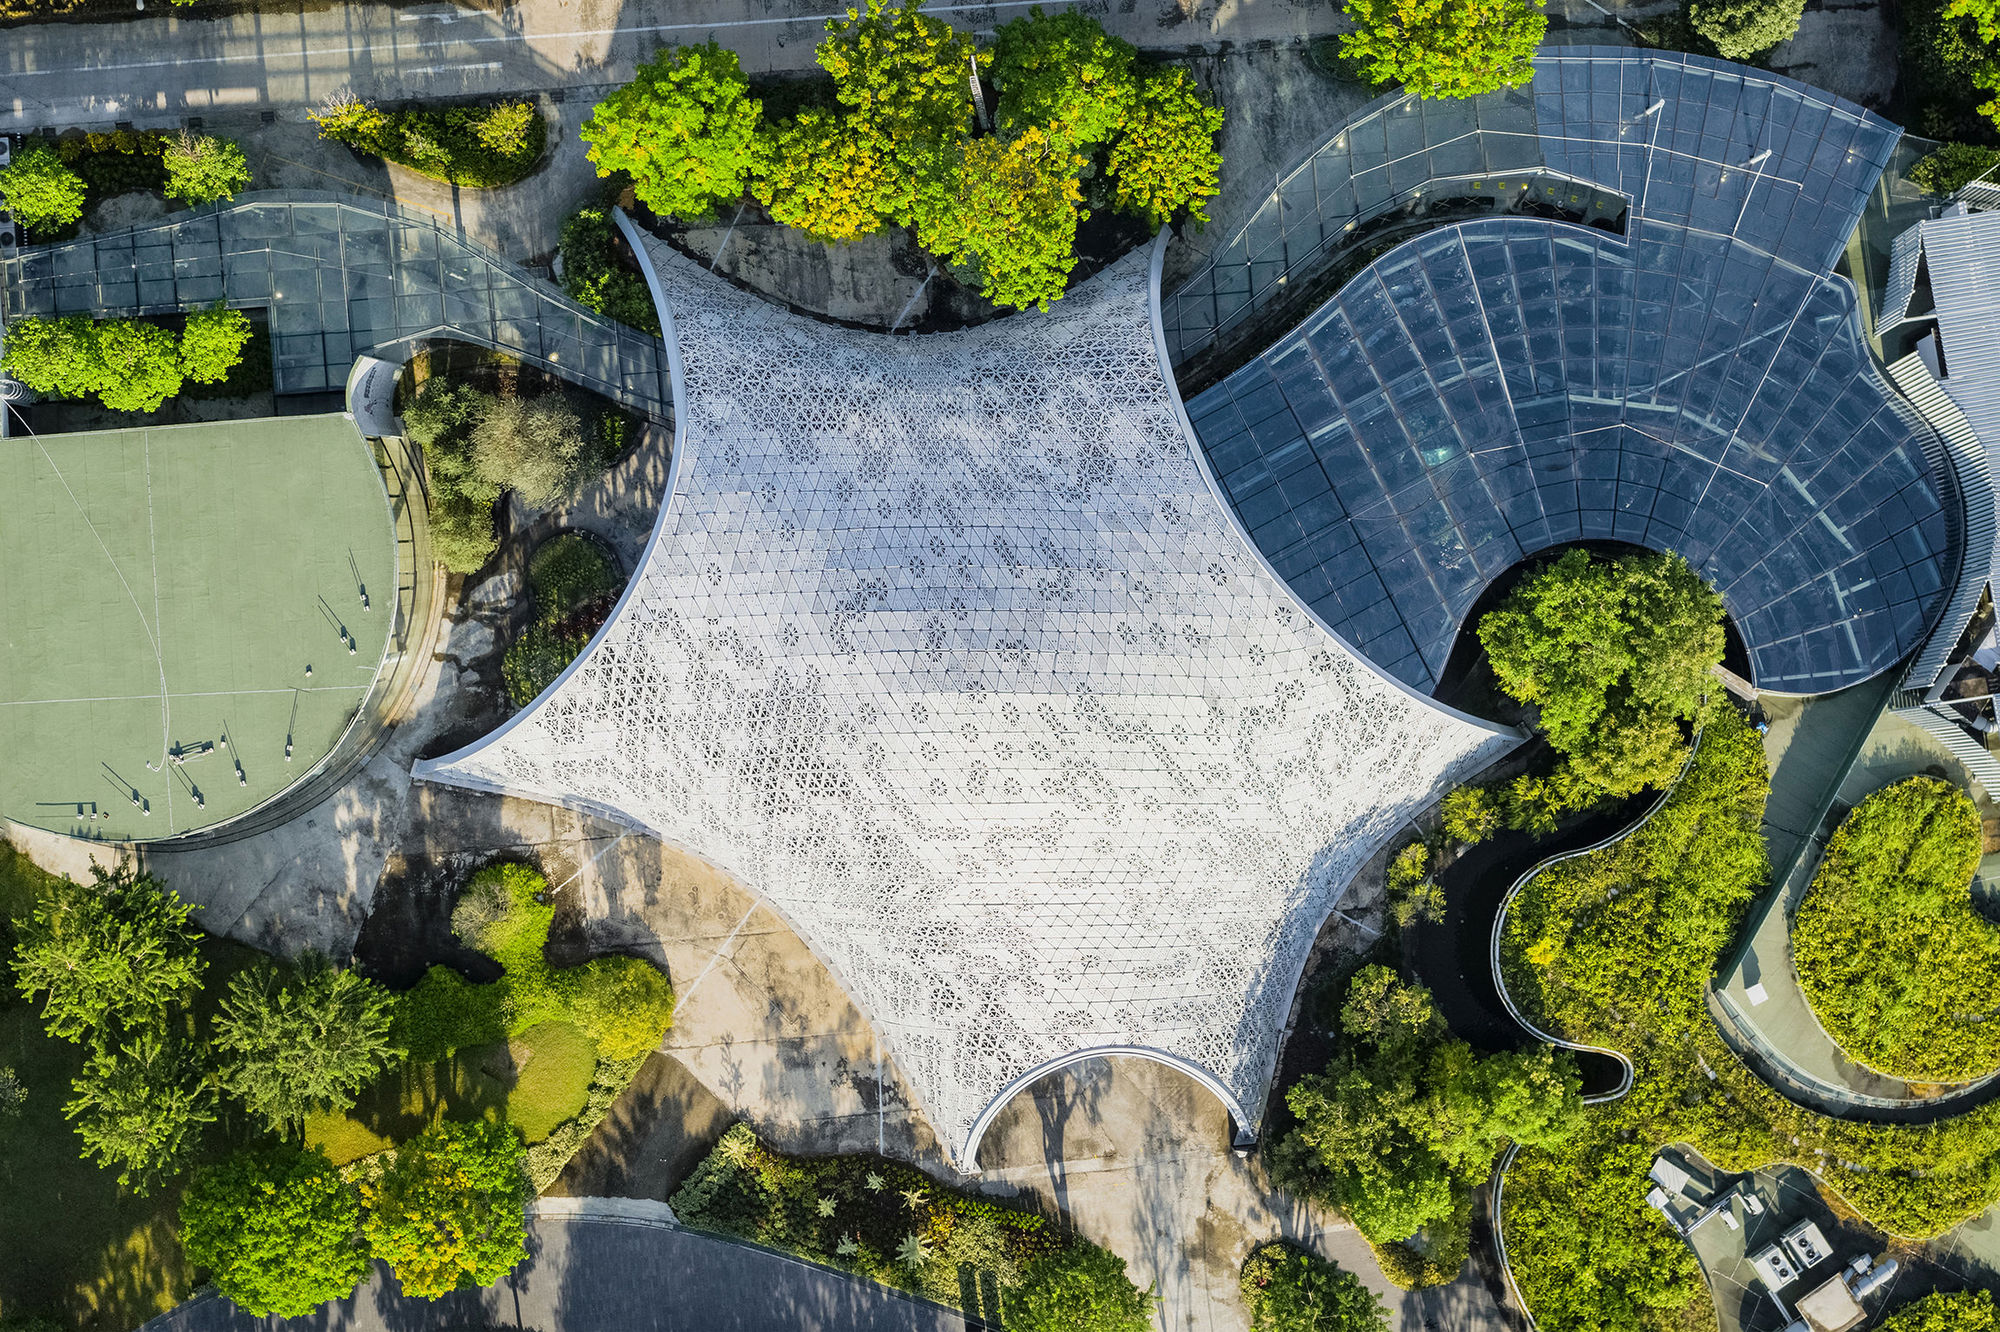 Green Architecture: 15 iF Award-Winning Projects That Build Oasis